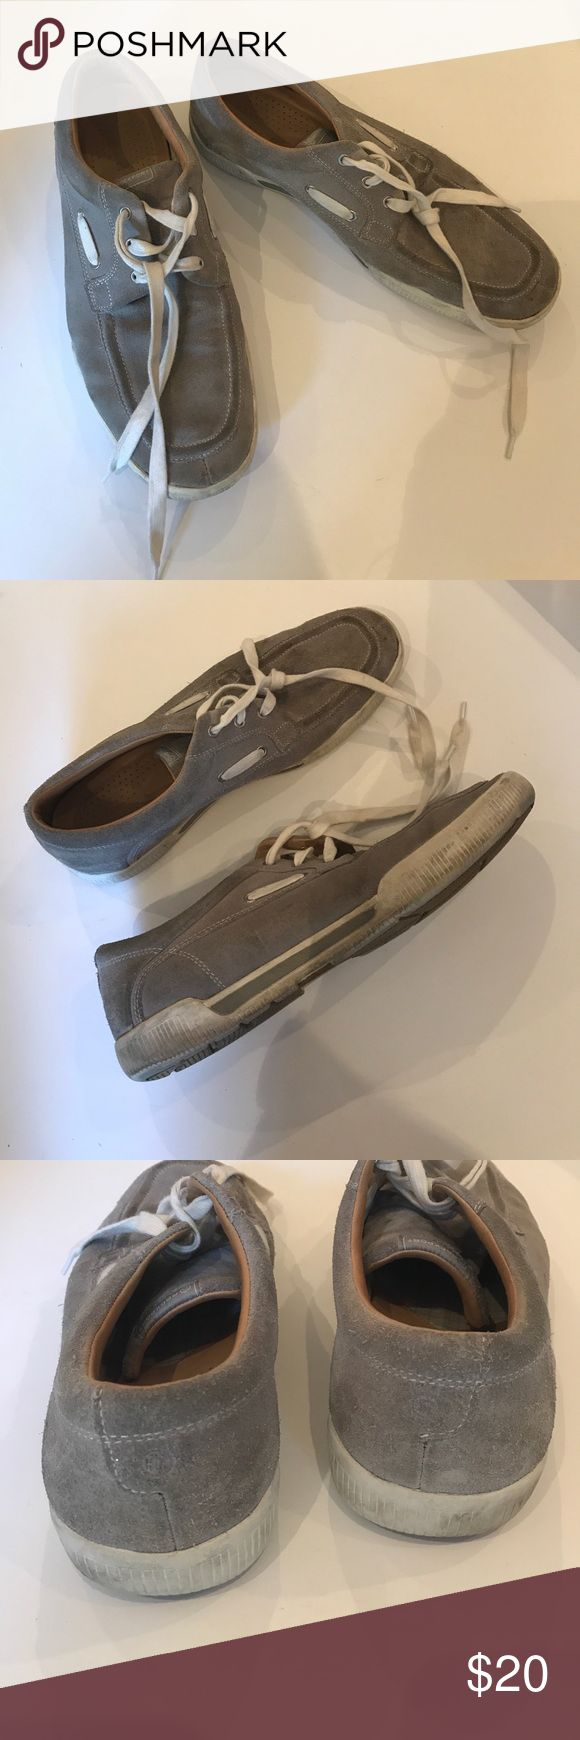 Men ROCKPORT Suede Lt Gray Boat Snicker Shoes 11 Men ROCKPORT Suede Lt Gray Boat Snicker Shoes 11. Can use some cleaning, otherwise in good condition. Rockport Shoes Boat Shoes